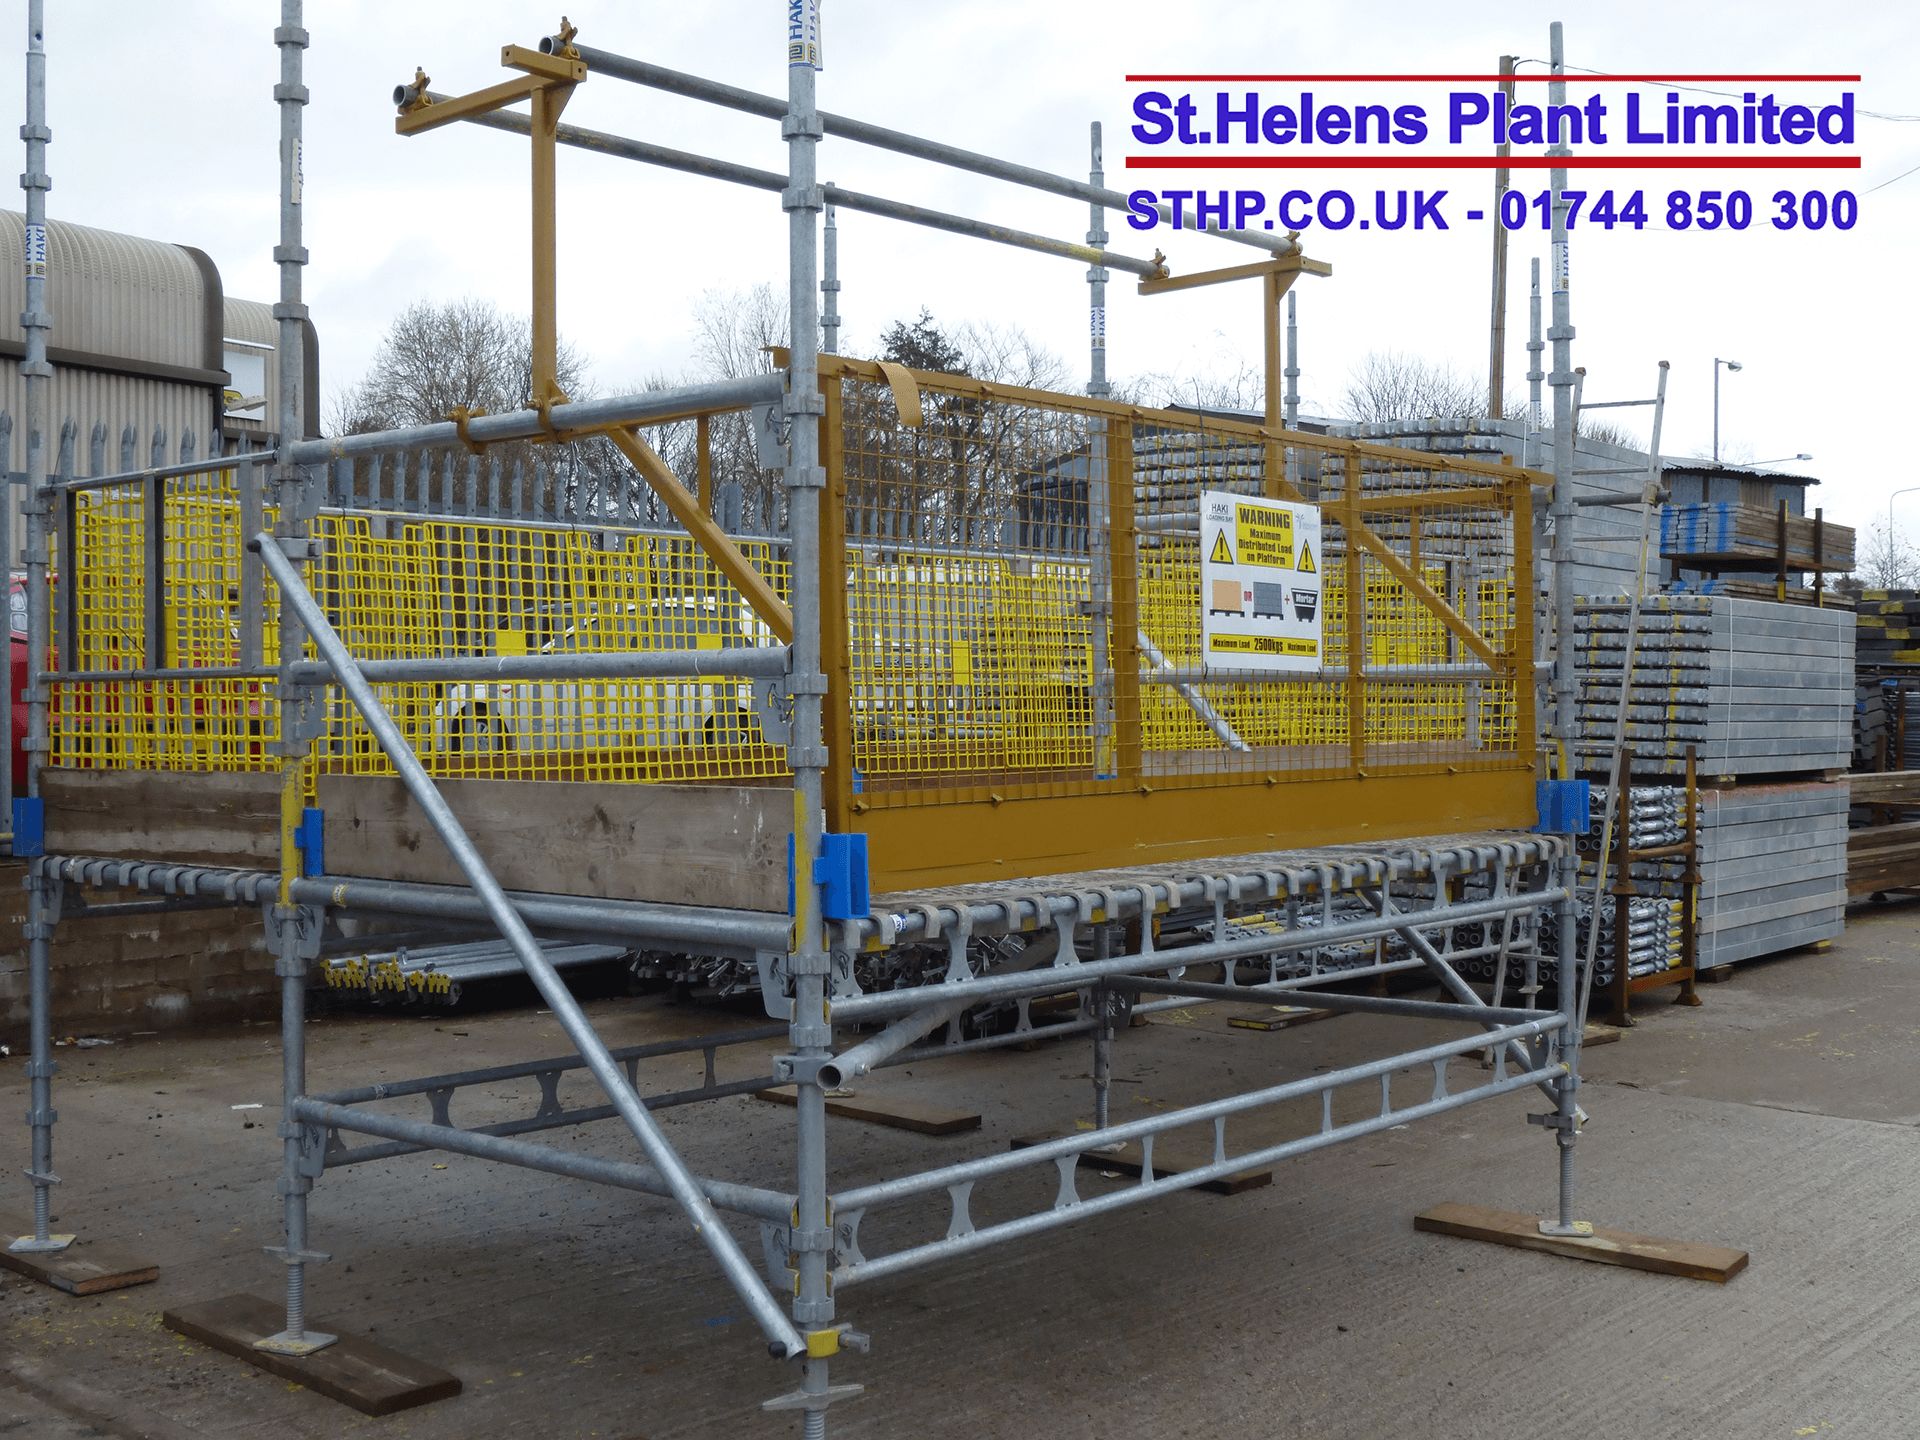 Haki-Loading-Tower-and-Gate-St-Helens-Plant-1